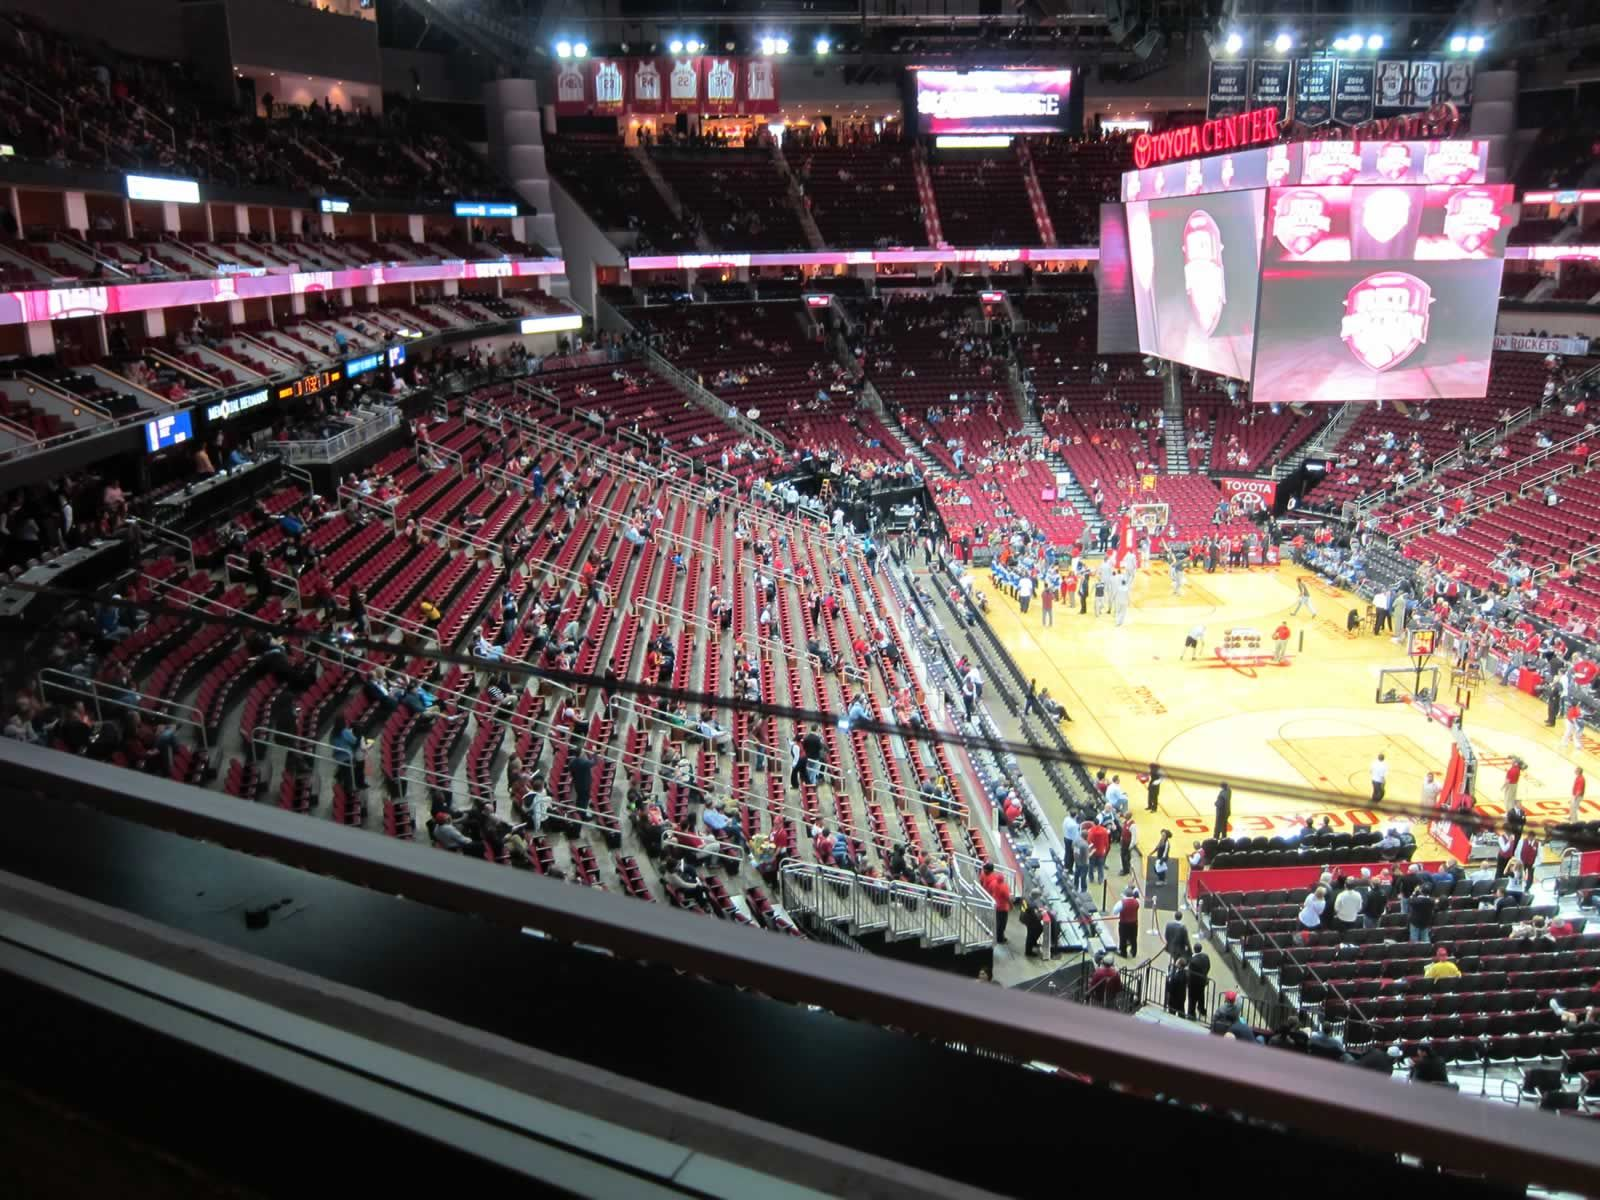 Section 403 seat view